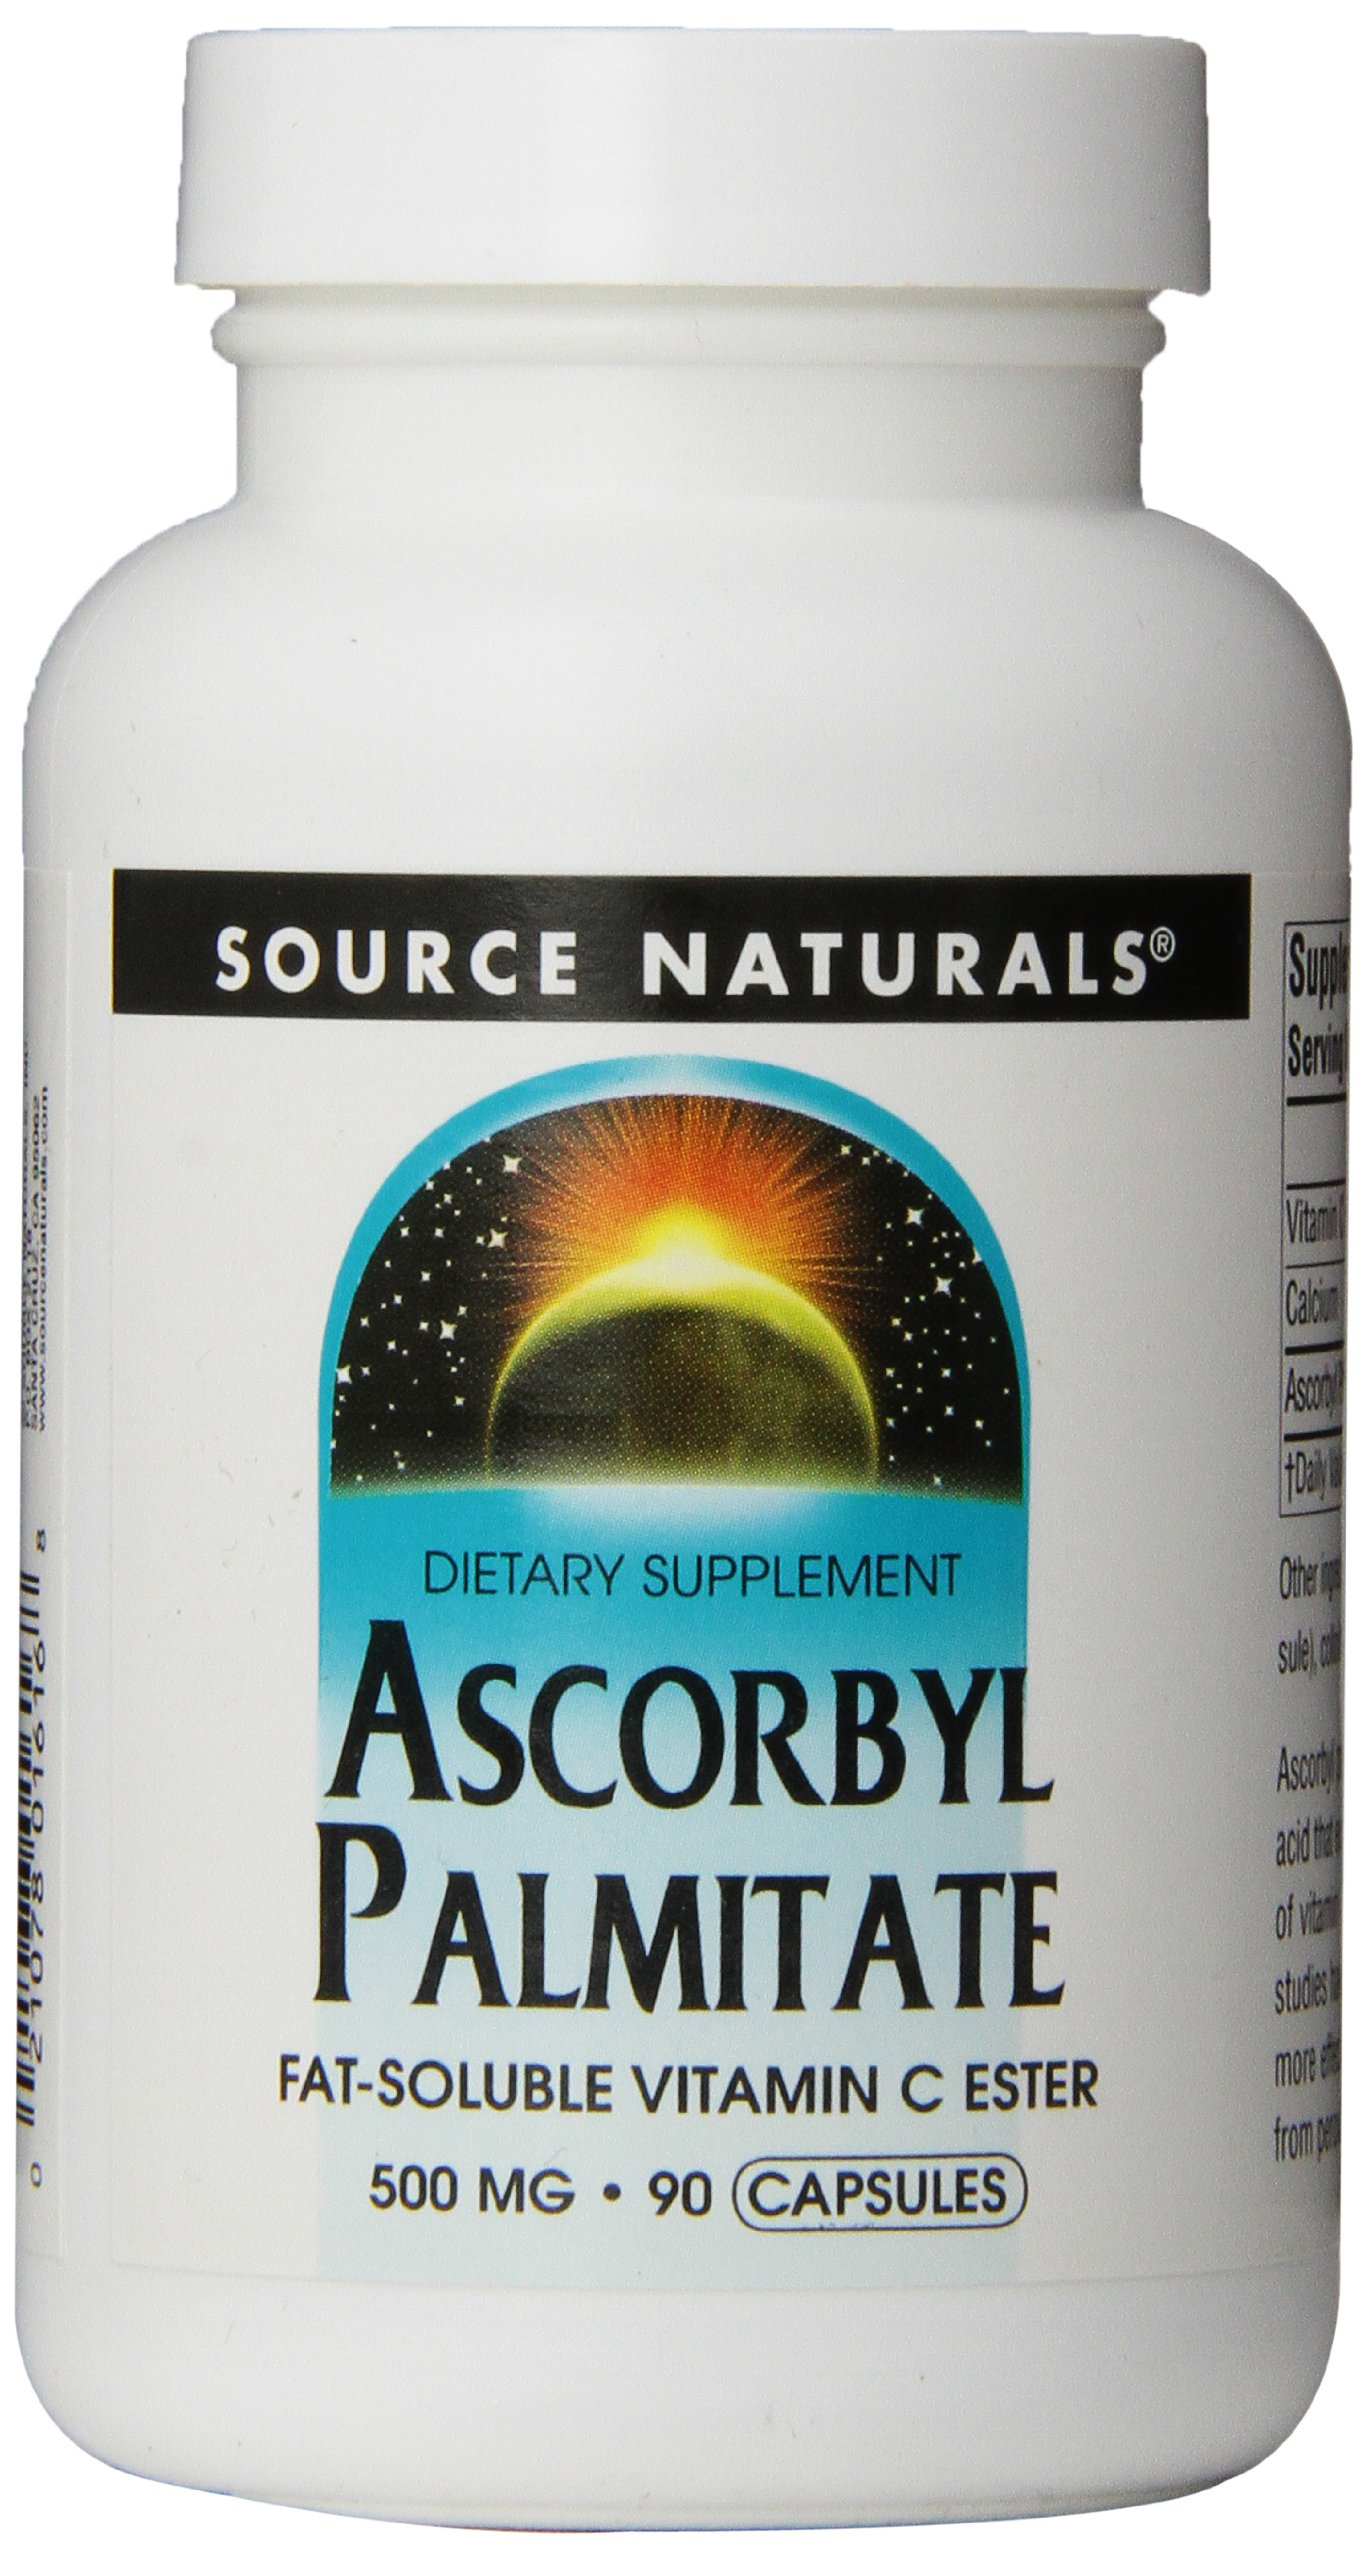 Source Naturals: Ascorbyl Palmitate 500 mg 90 Capsule